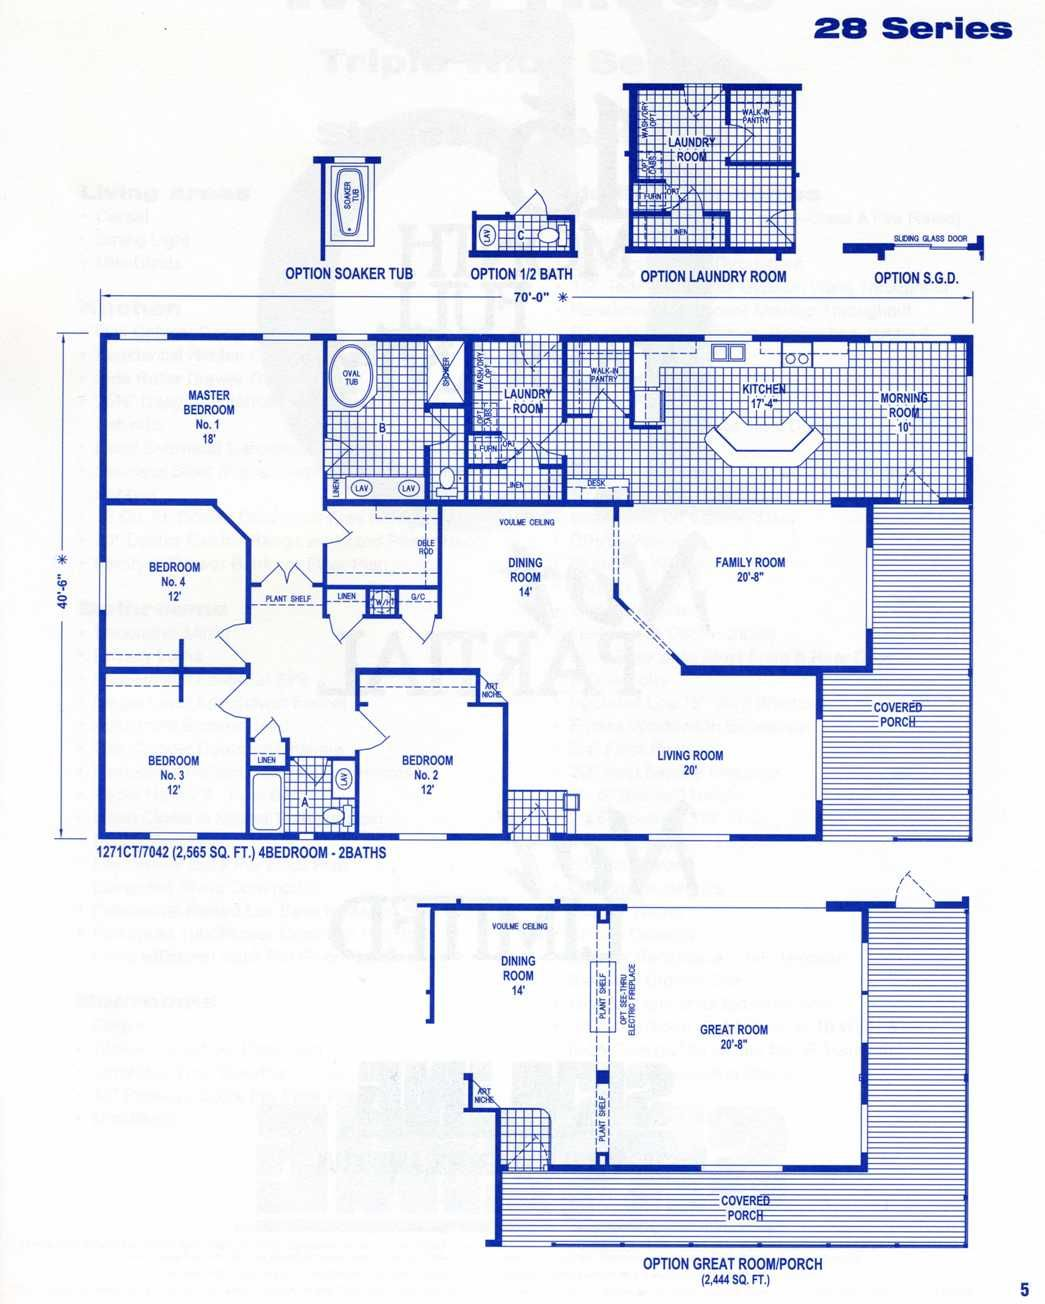 fleetwood mobile home floor plans and prices | Click Here For Series on older clayton mobile home, 16 x 80 1998 champion mobile home, 1993 clayton mobile home, 1993 rochester mobile home, 1986 skyline mobile home, square feet of mobile home, 1993 skyline mobile home, 1998 marlette single wide manufactured home,